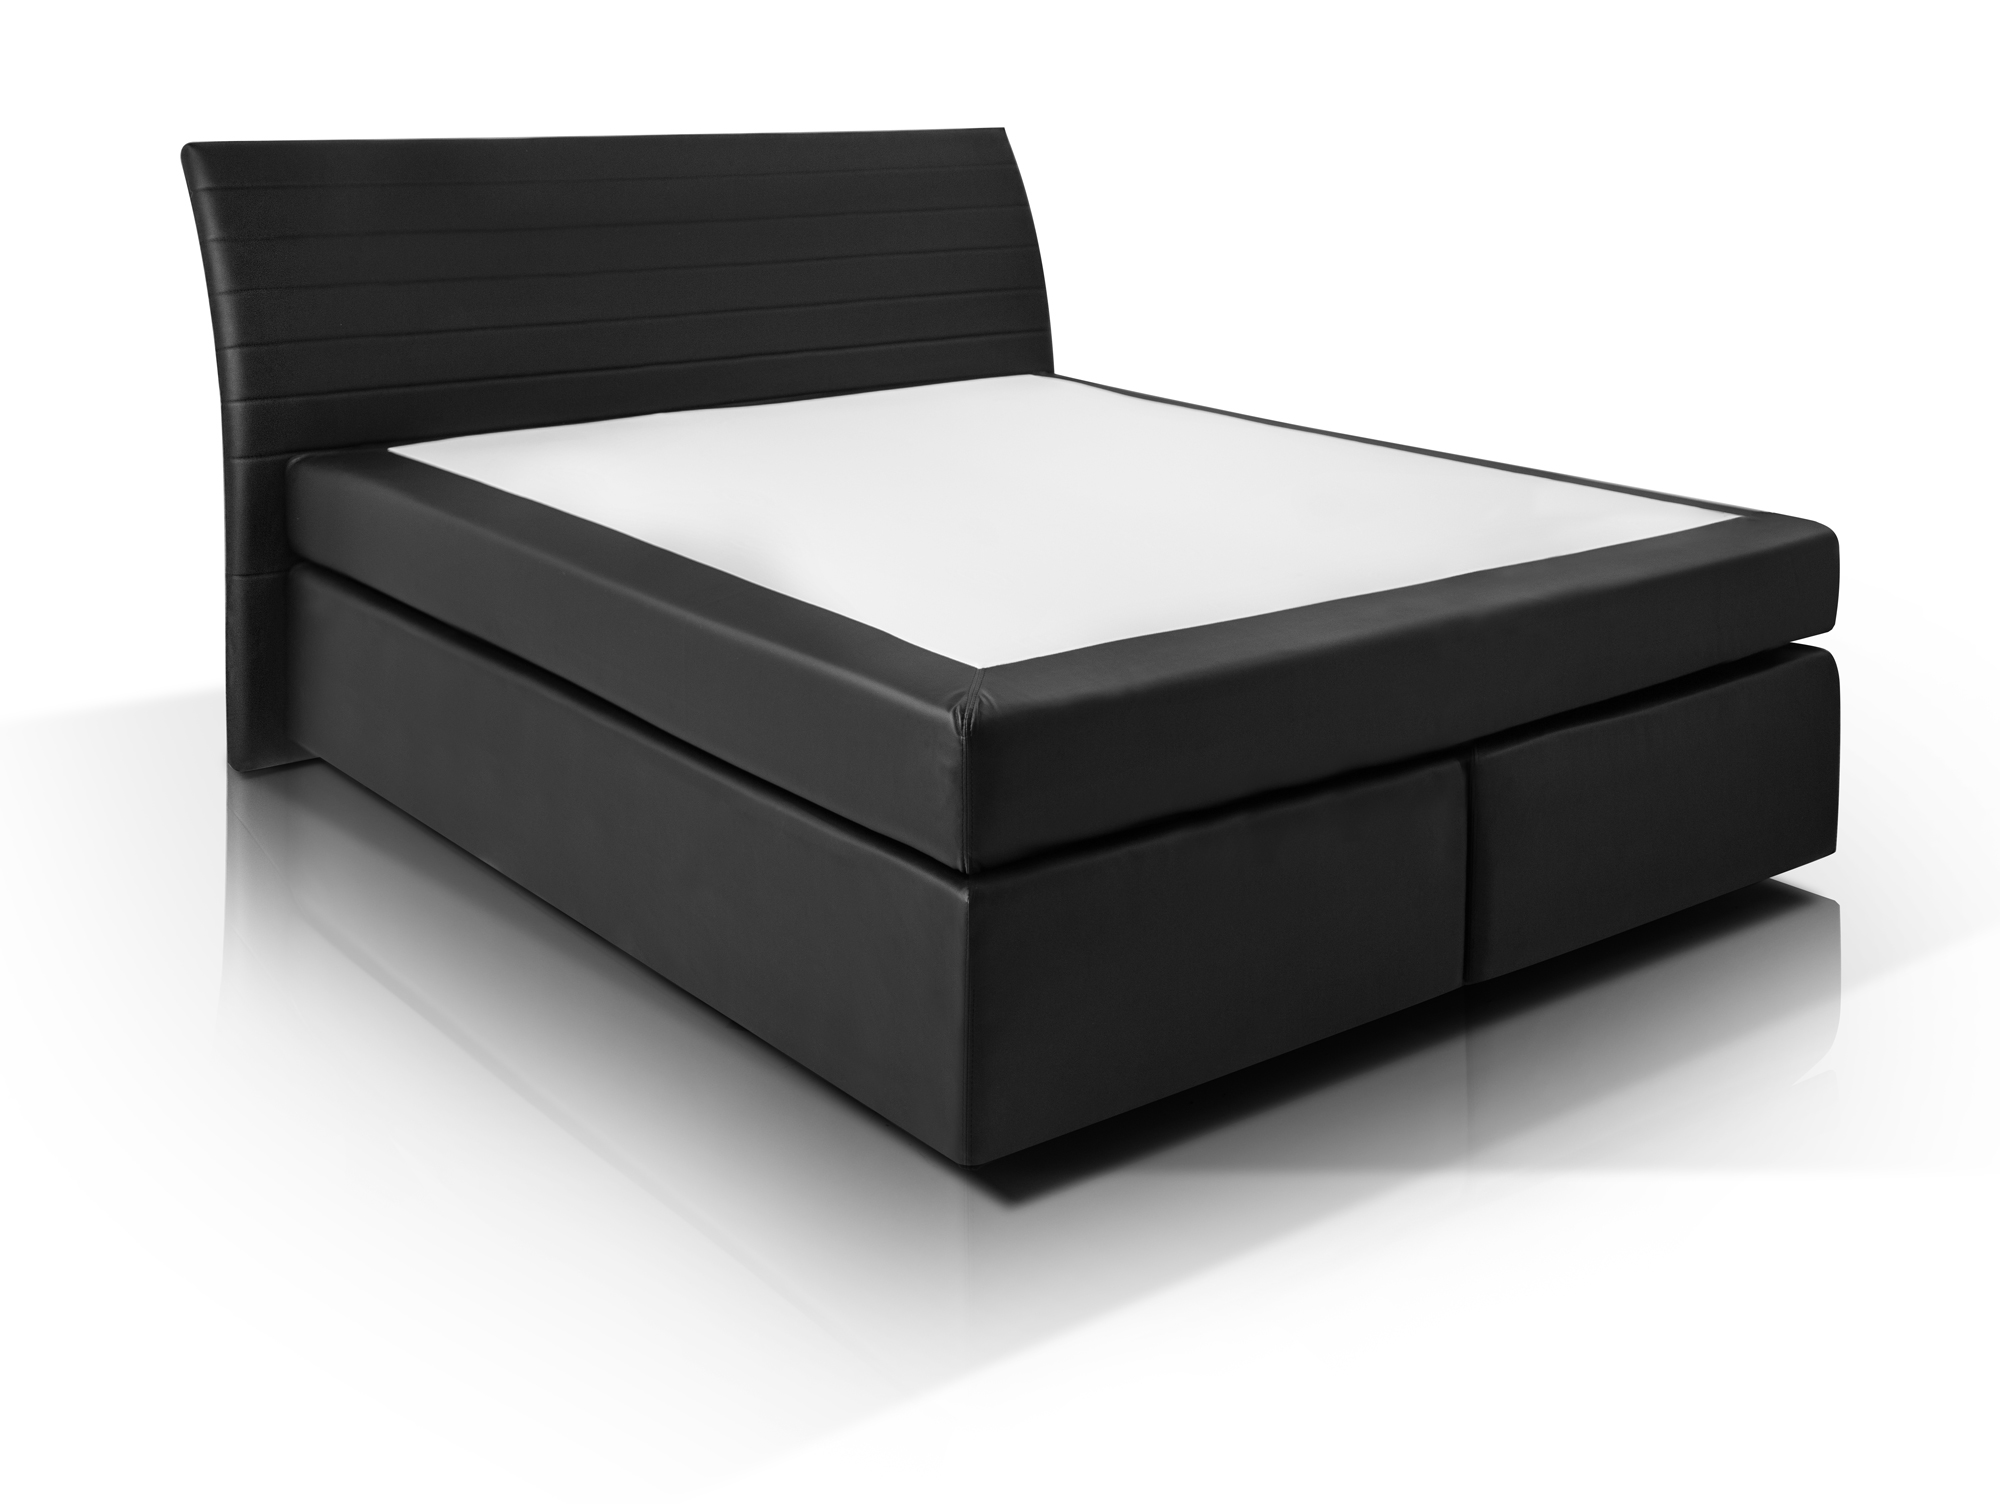 heaven boxspringbett kunstlederbezug 180 x 200 cm schwarz h rtegrad 3. Black Bedroom Furniture Sets. Home Design Ideas